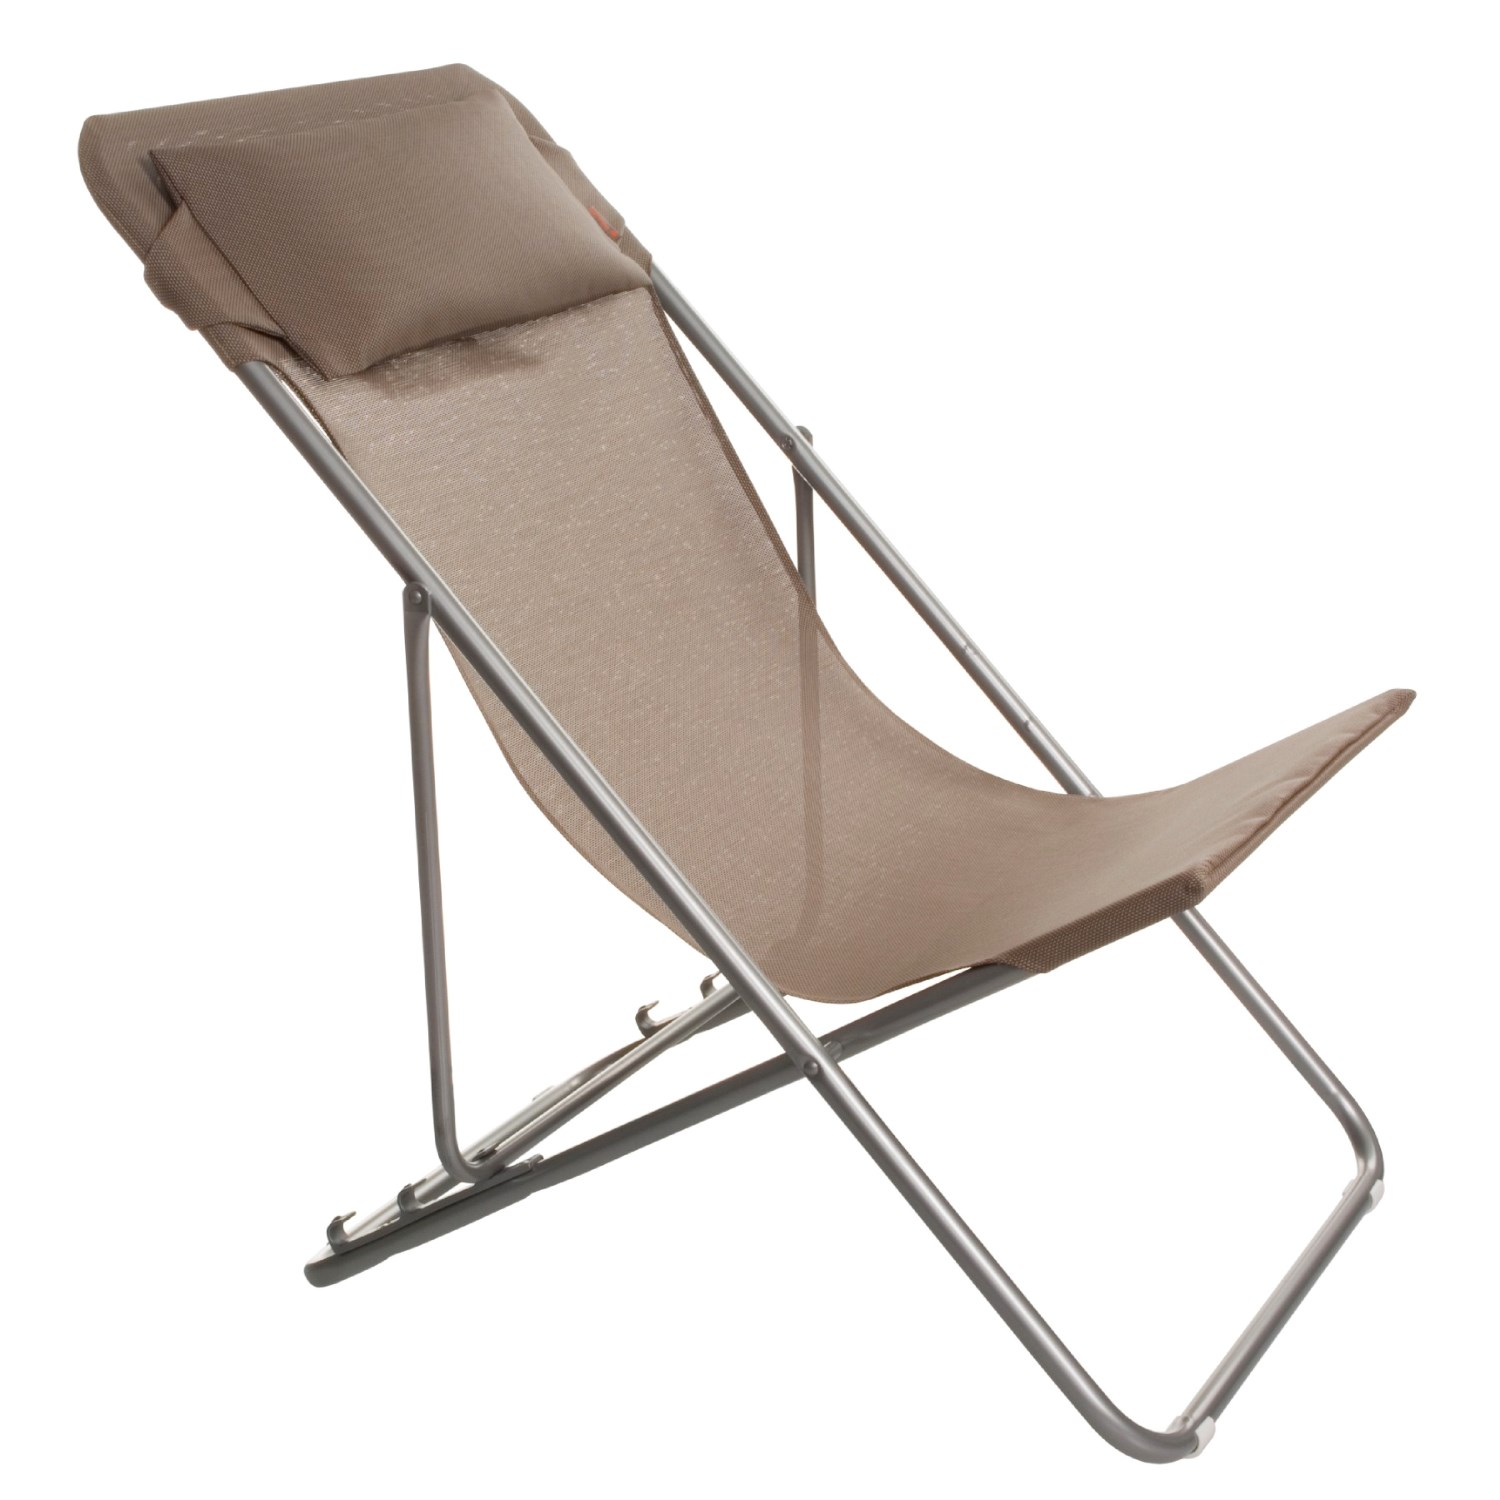 Transatube lafuma for Chaise longue pliante lafuma